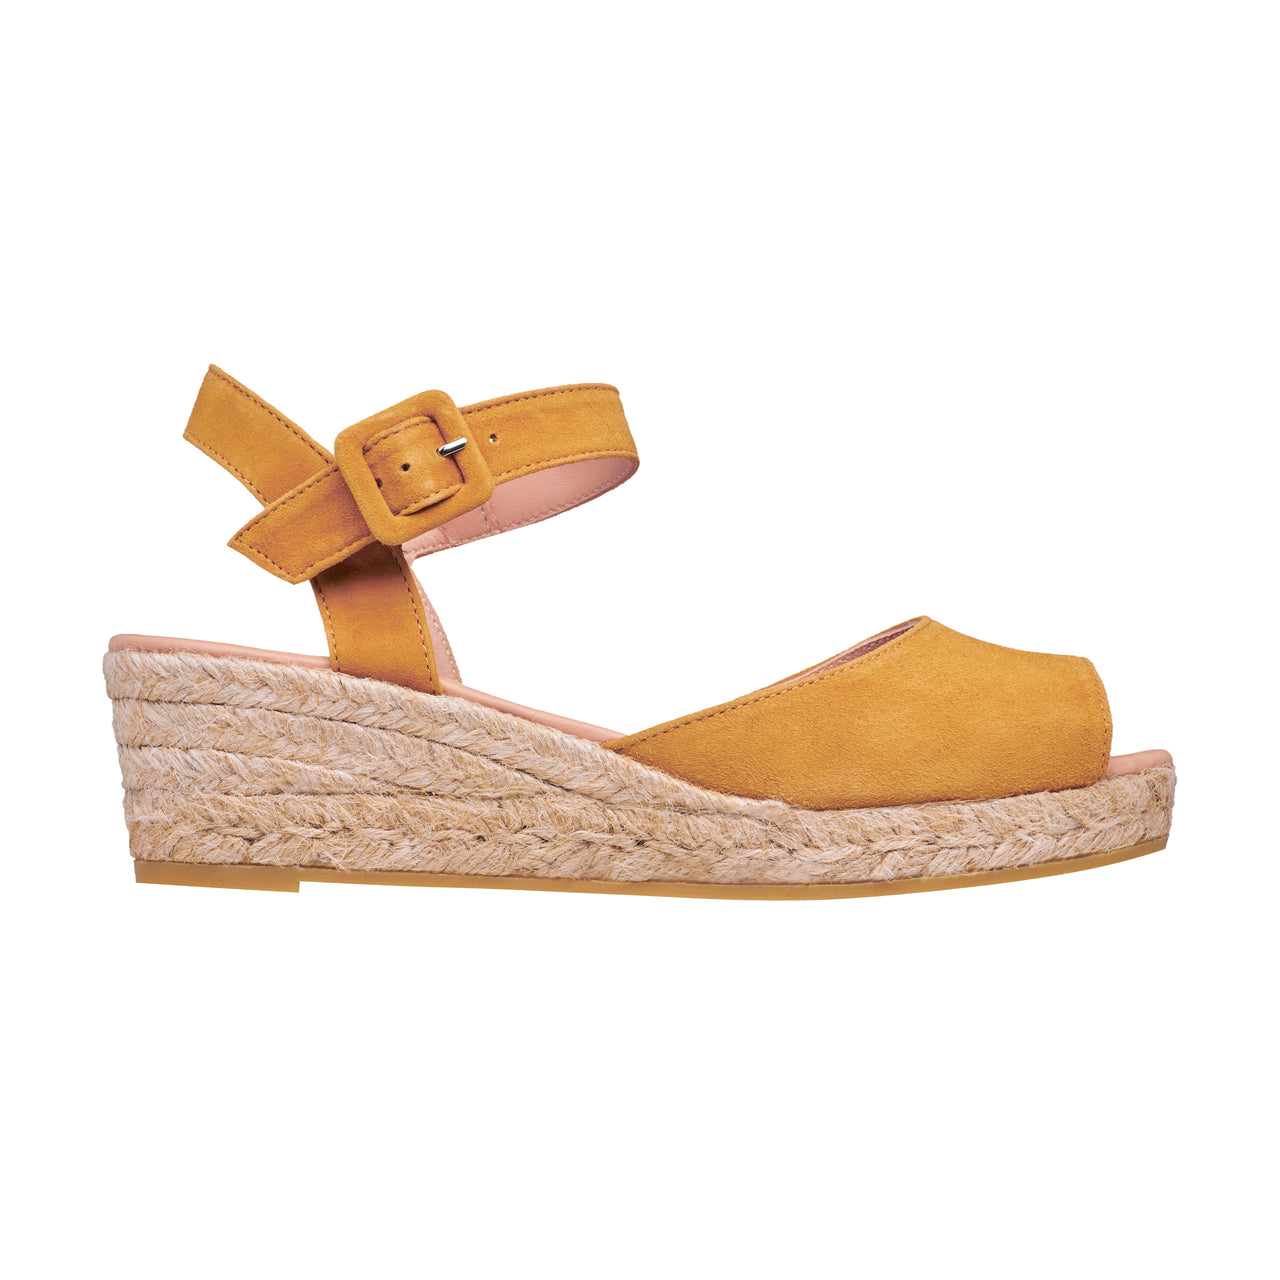 CONO Ochre espadrilles - Badt and Co - singapore